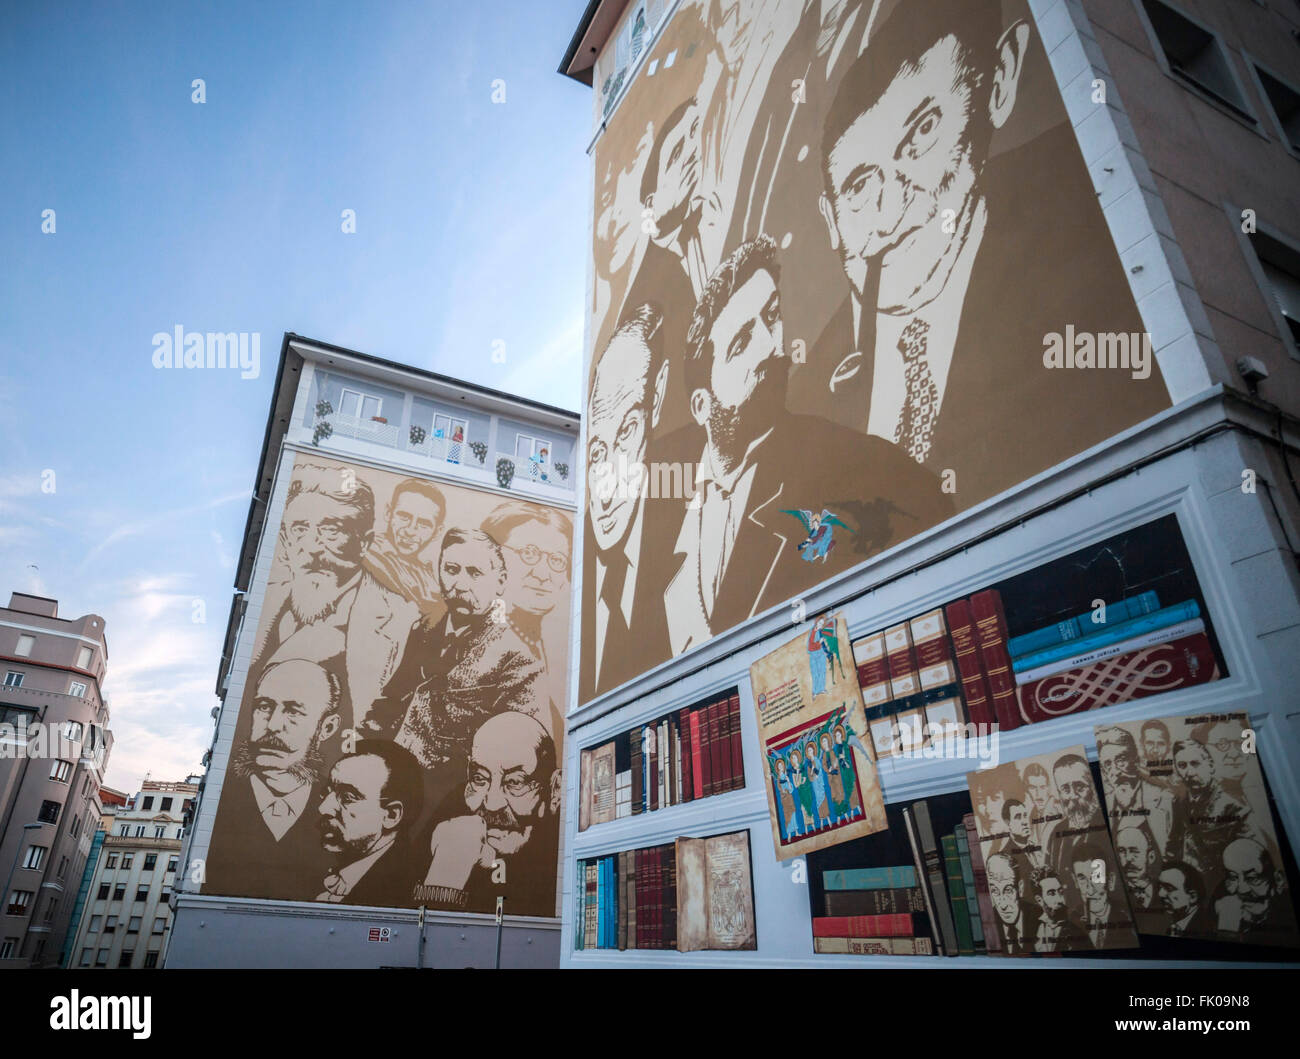 Painted walls with famous writers.Santander. - Stock Image